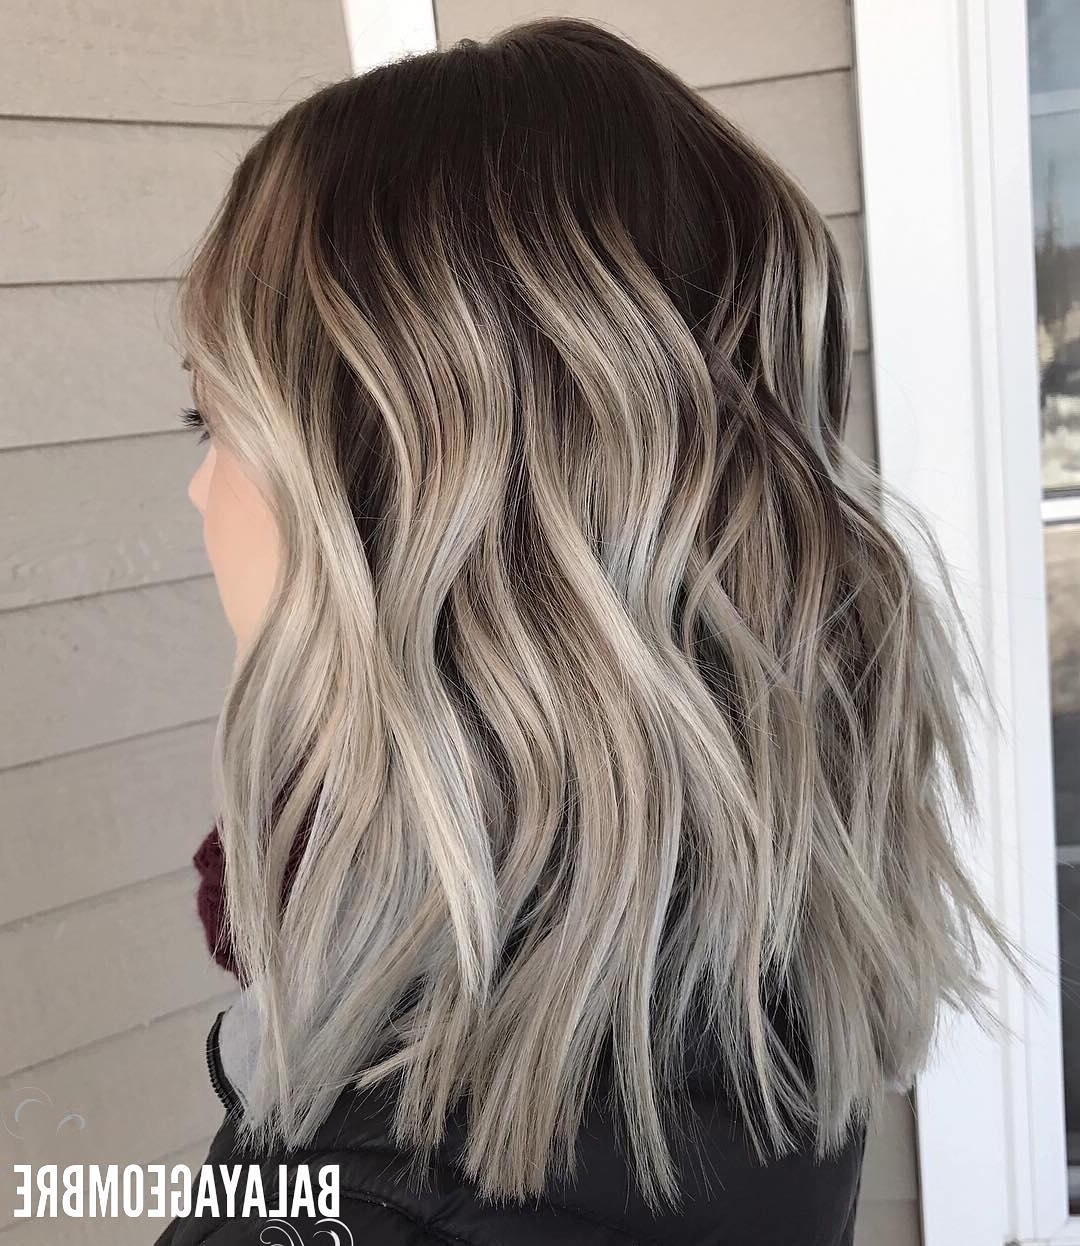 10 Best Medium Layered Hairstyles 2018 Brown & Ash Blonde Fashion Colors In Newest Dark Blonde Into White Hairstyles (View 1 of 20)